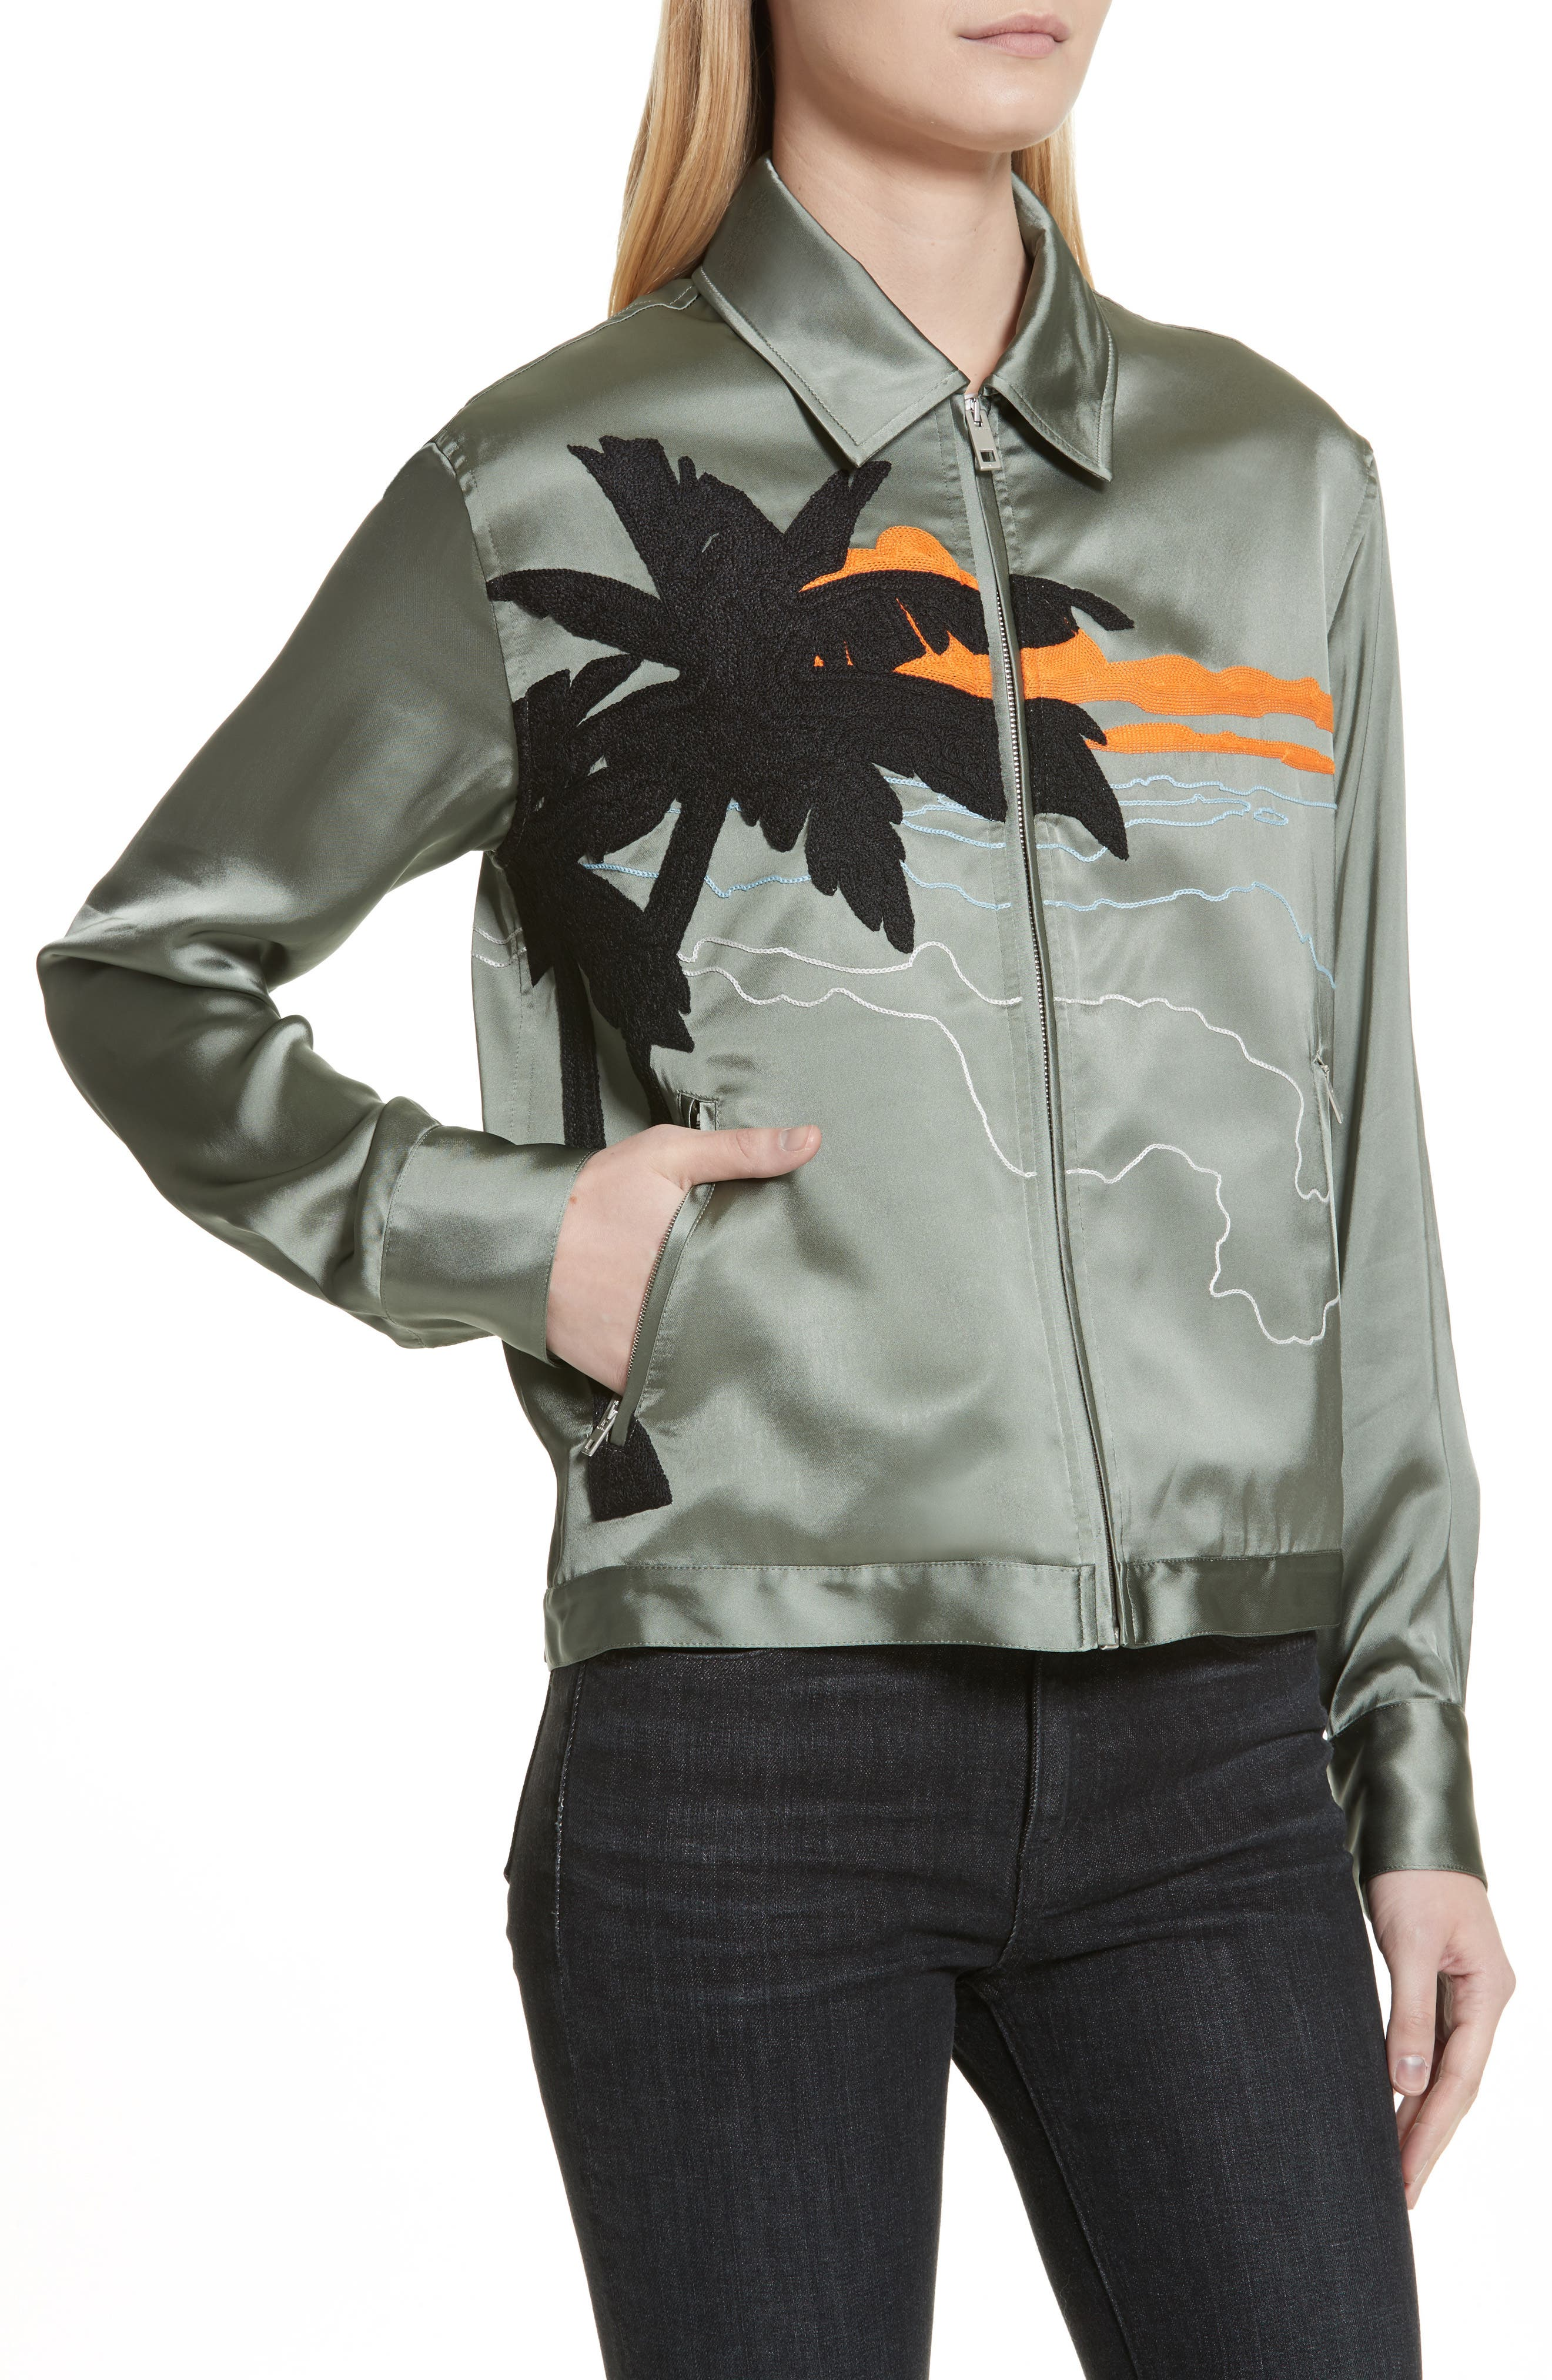 Roth Embroidered Satin Jacket,                             Alternate thumbnail 4, color,                             350